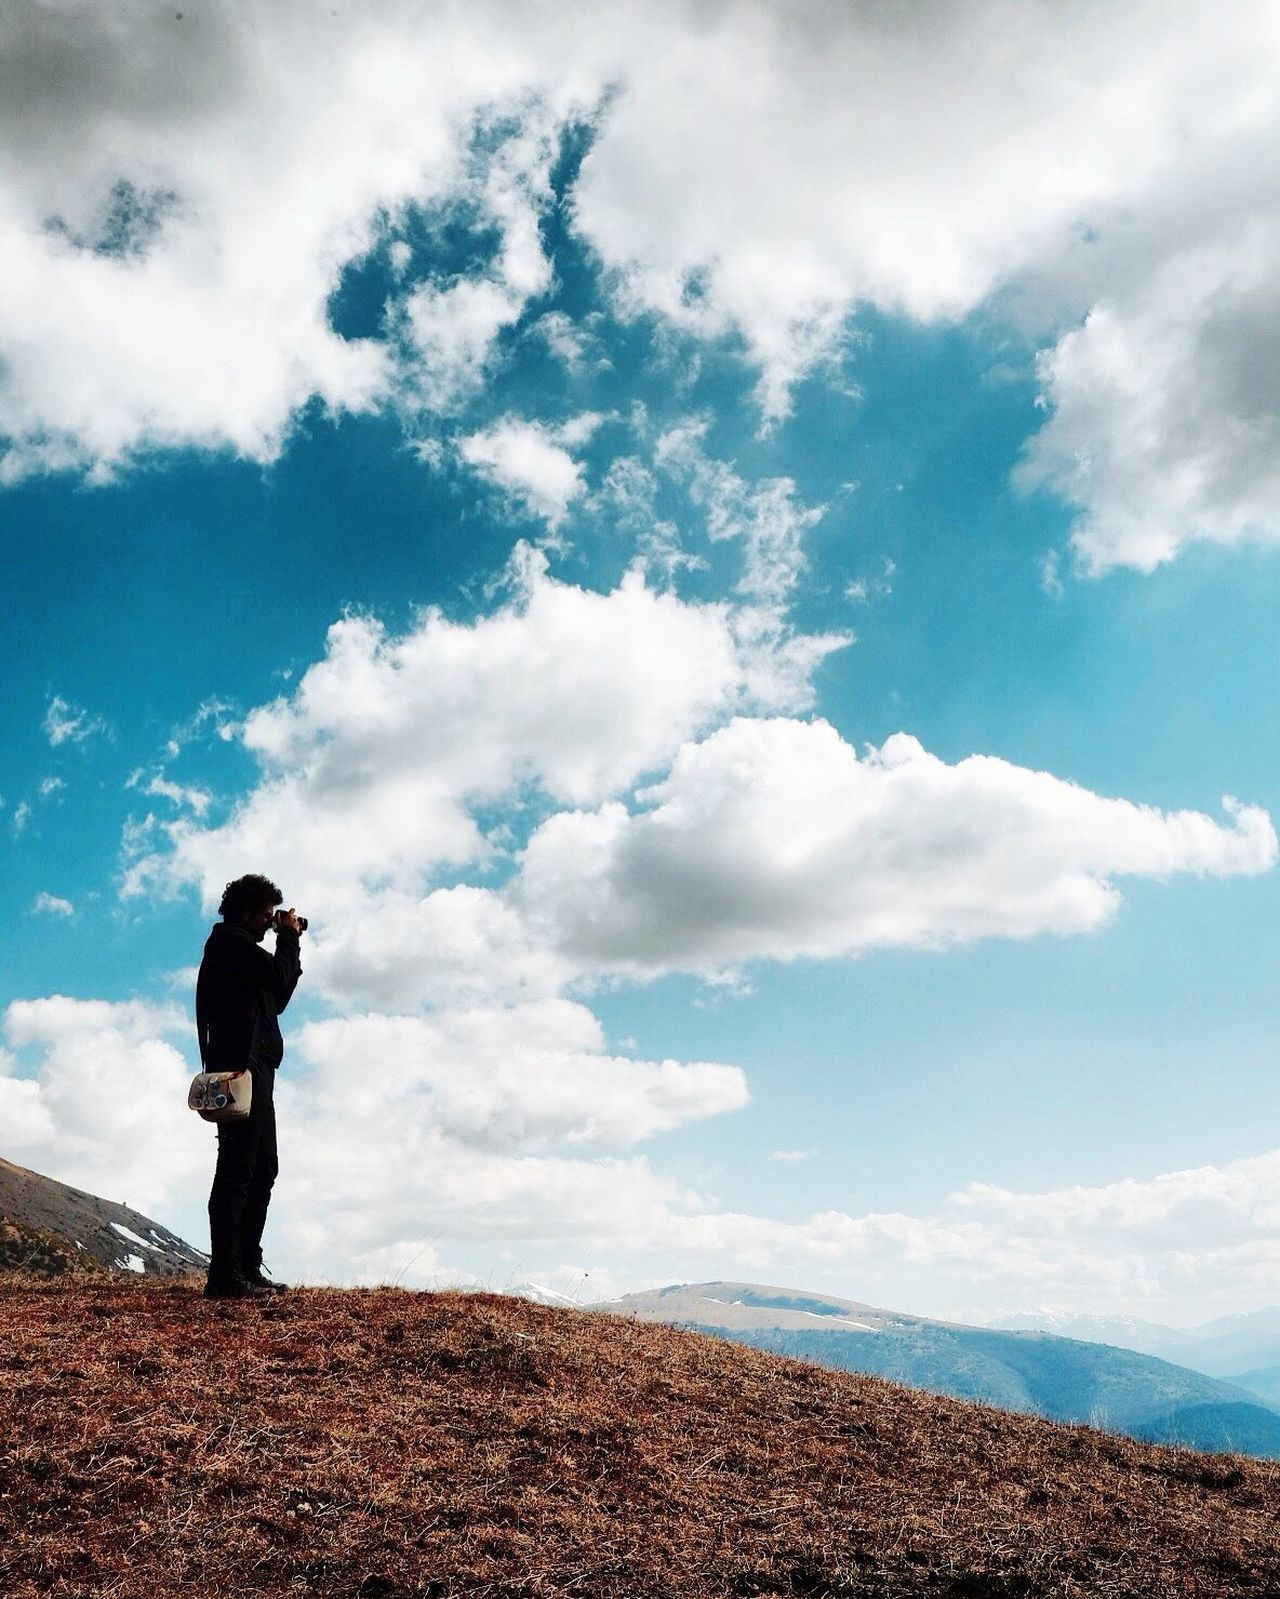 RipartidaiSibillini Sky Full Length Cloud - Sky Real People One Person Standing Men Outdoors Day Leisure Activity Discover Italy / With Ale Photography Themes Lifestyles Hiking Beauty In Nature Scenics Tranquil Scene Landscape Adventure Mountain